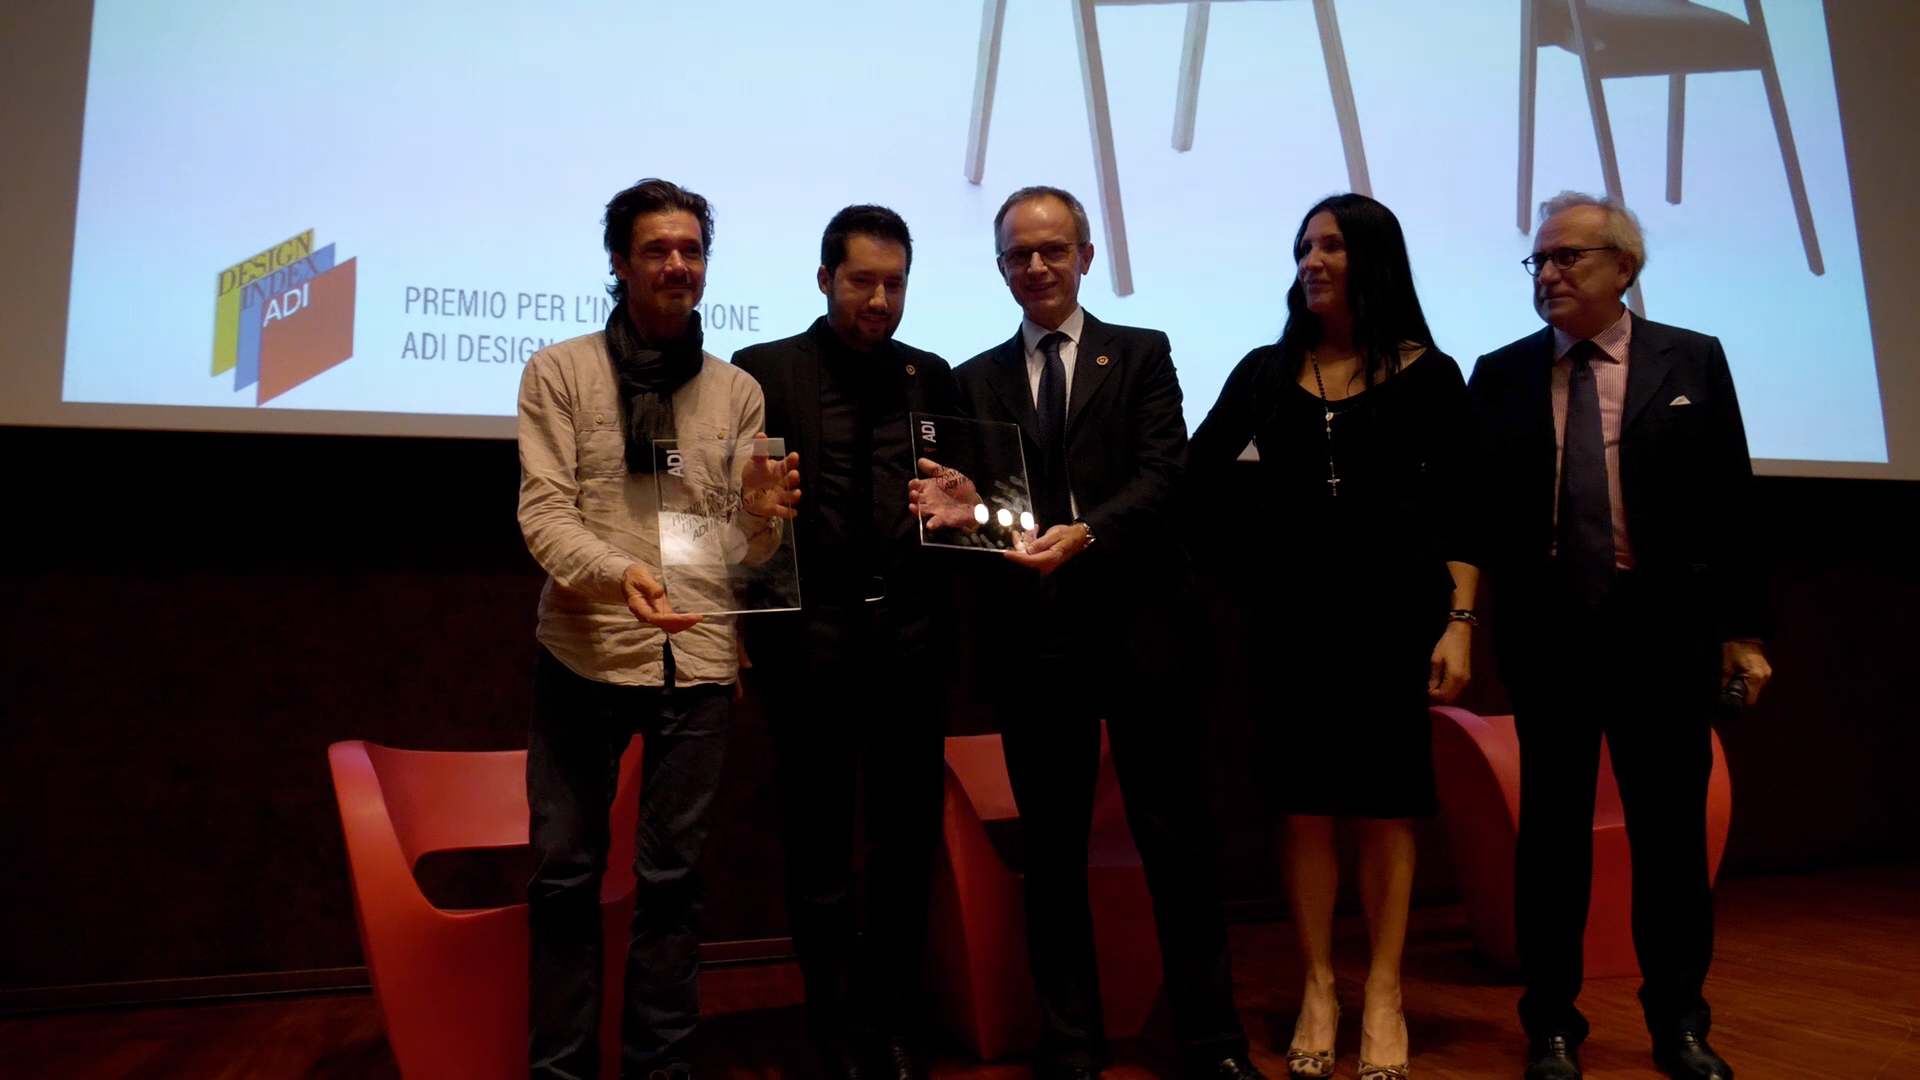 Let's relive together the highlights moments of the ADI Index 2019 event where Genea Poltrona won the innovation award. An exciting evening that we retrace through the best moments with this video. A beautiful #TBT that warm our heart. . #adidesignindex #adidesign #adi #adidesignindex2019 #index2019 #CompassodOro #compassodoro2020 #adiinnovationdesign #exhibitiondesign #interiordesign #adi2020 #ecodesign #geneacollection #Passonidesign